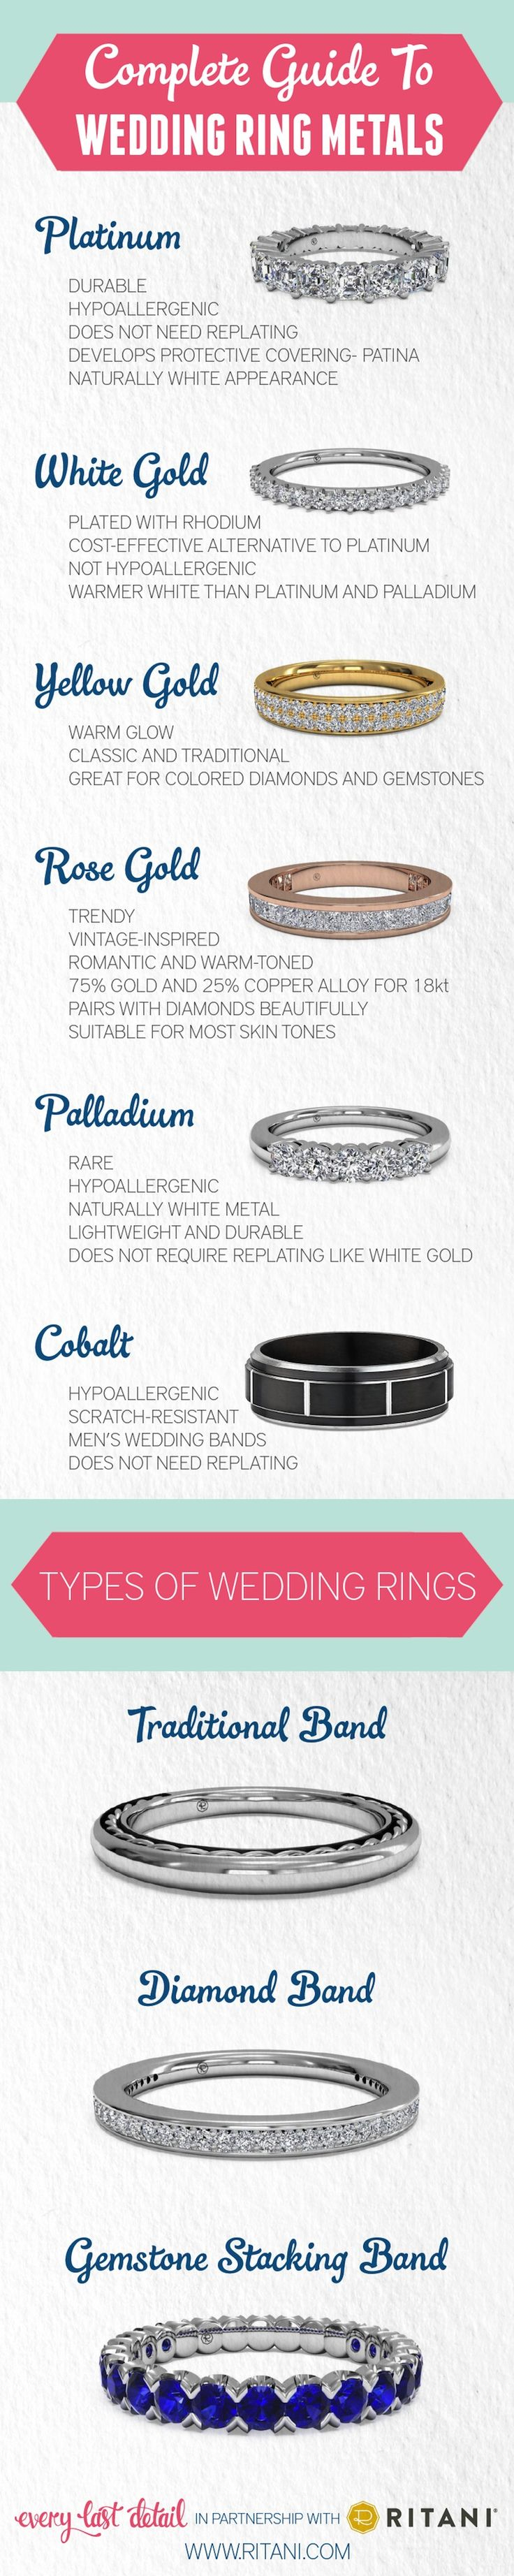 A Complete Guide to Wedding Ring Metals